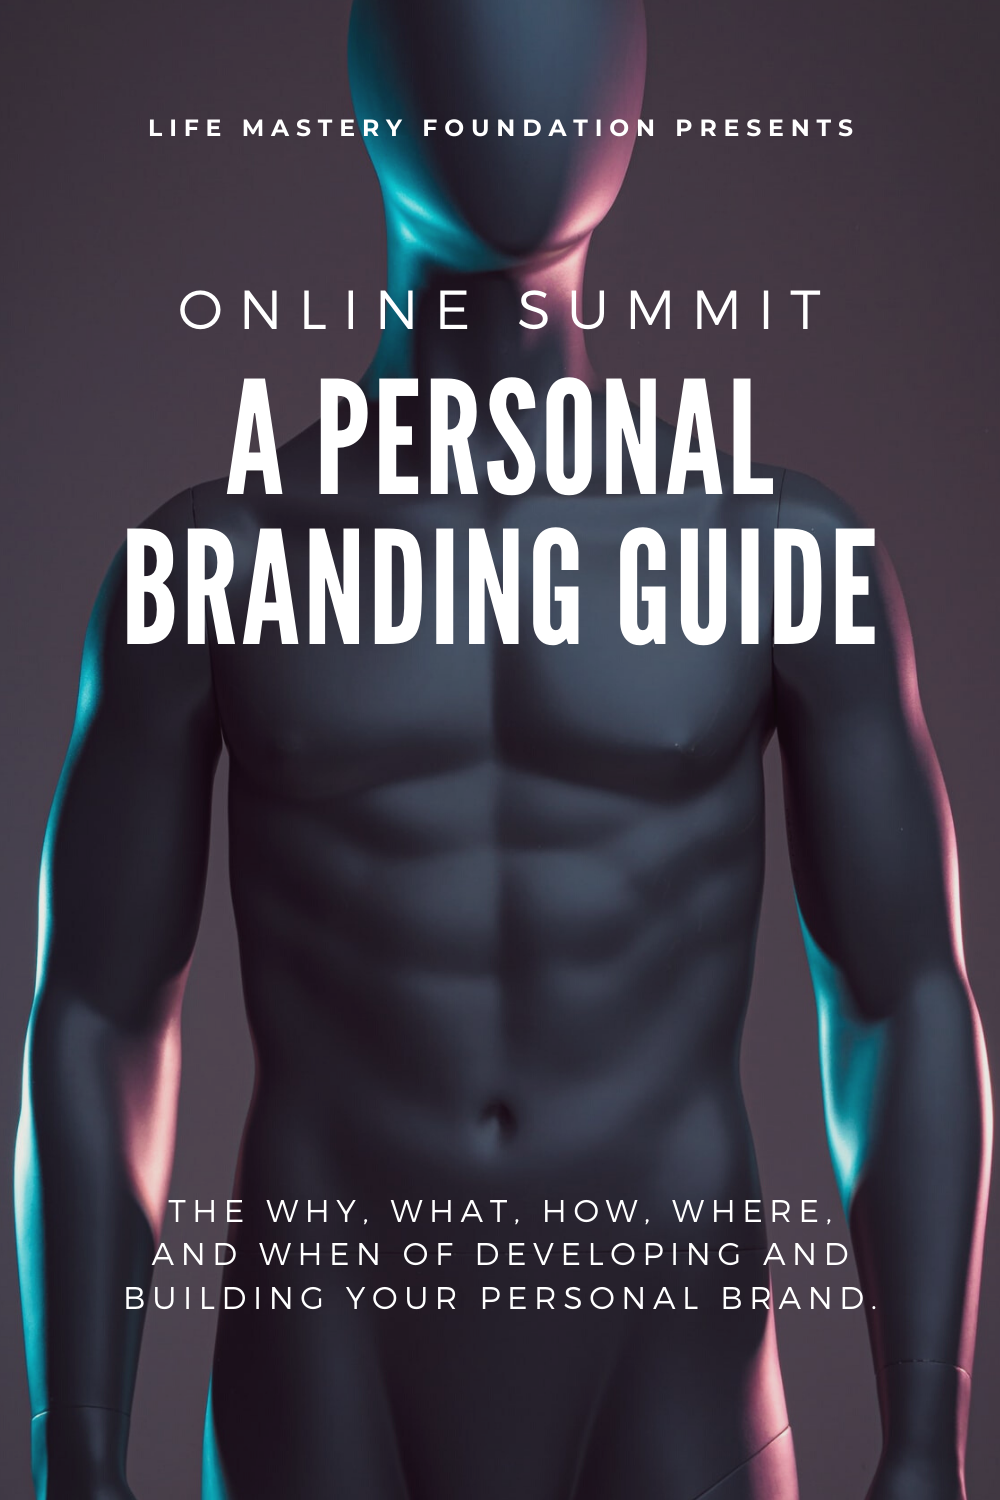 Join Life Mastery Foundation for their upcoming summit: A Personal Branding Guide.   #Branding #Summit #OnlineSummit #FreeEducation #PersonalBranding #BrandingExperts #SocialMediaBranding #InstagramBranding